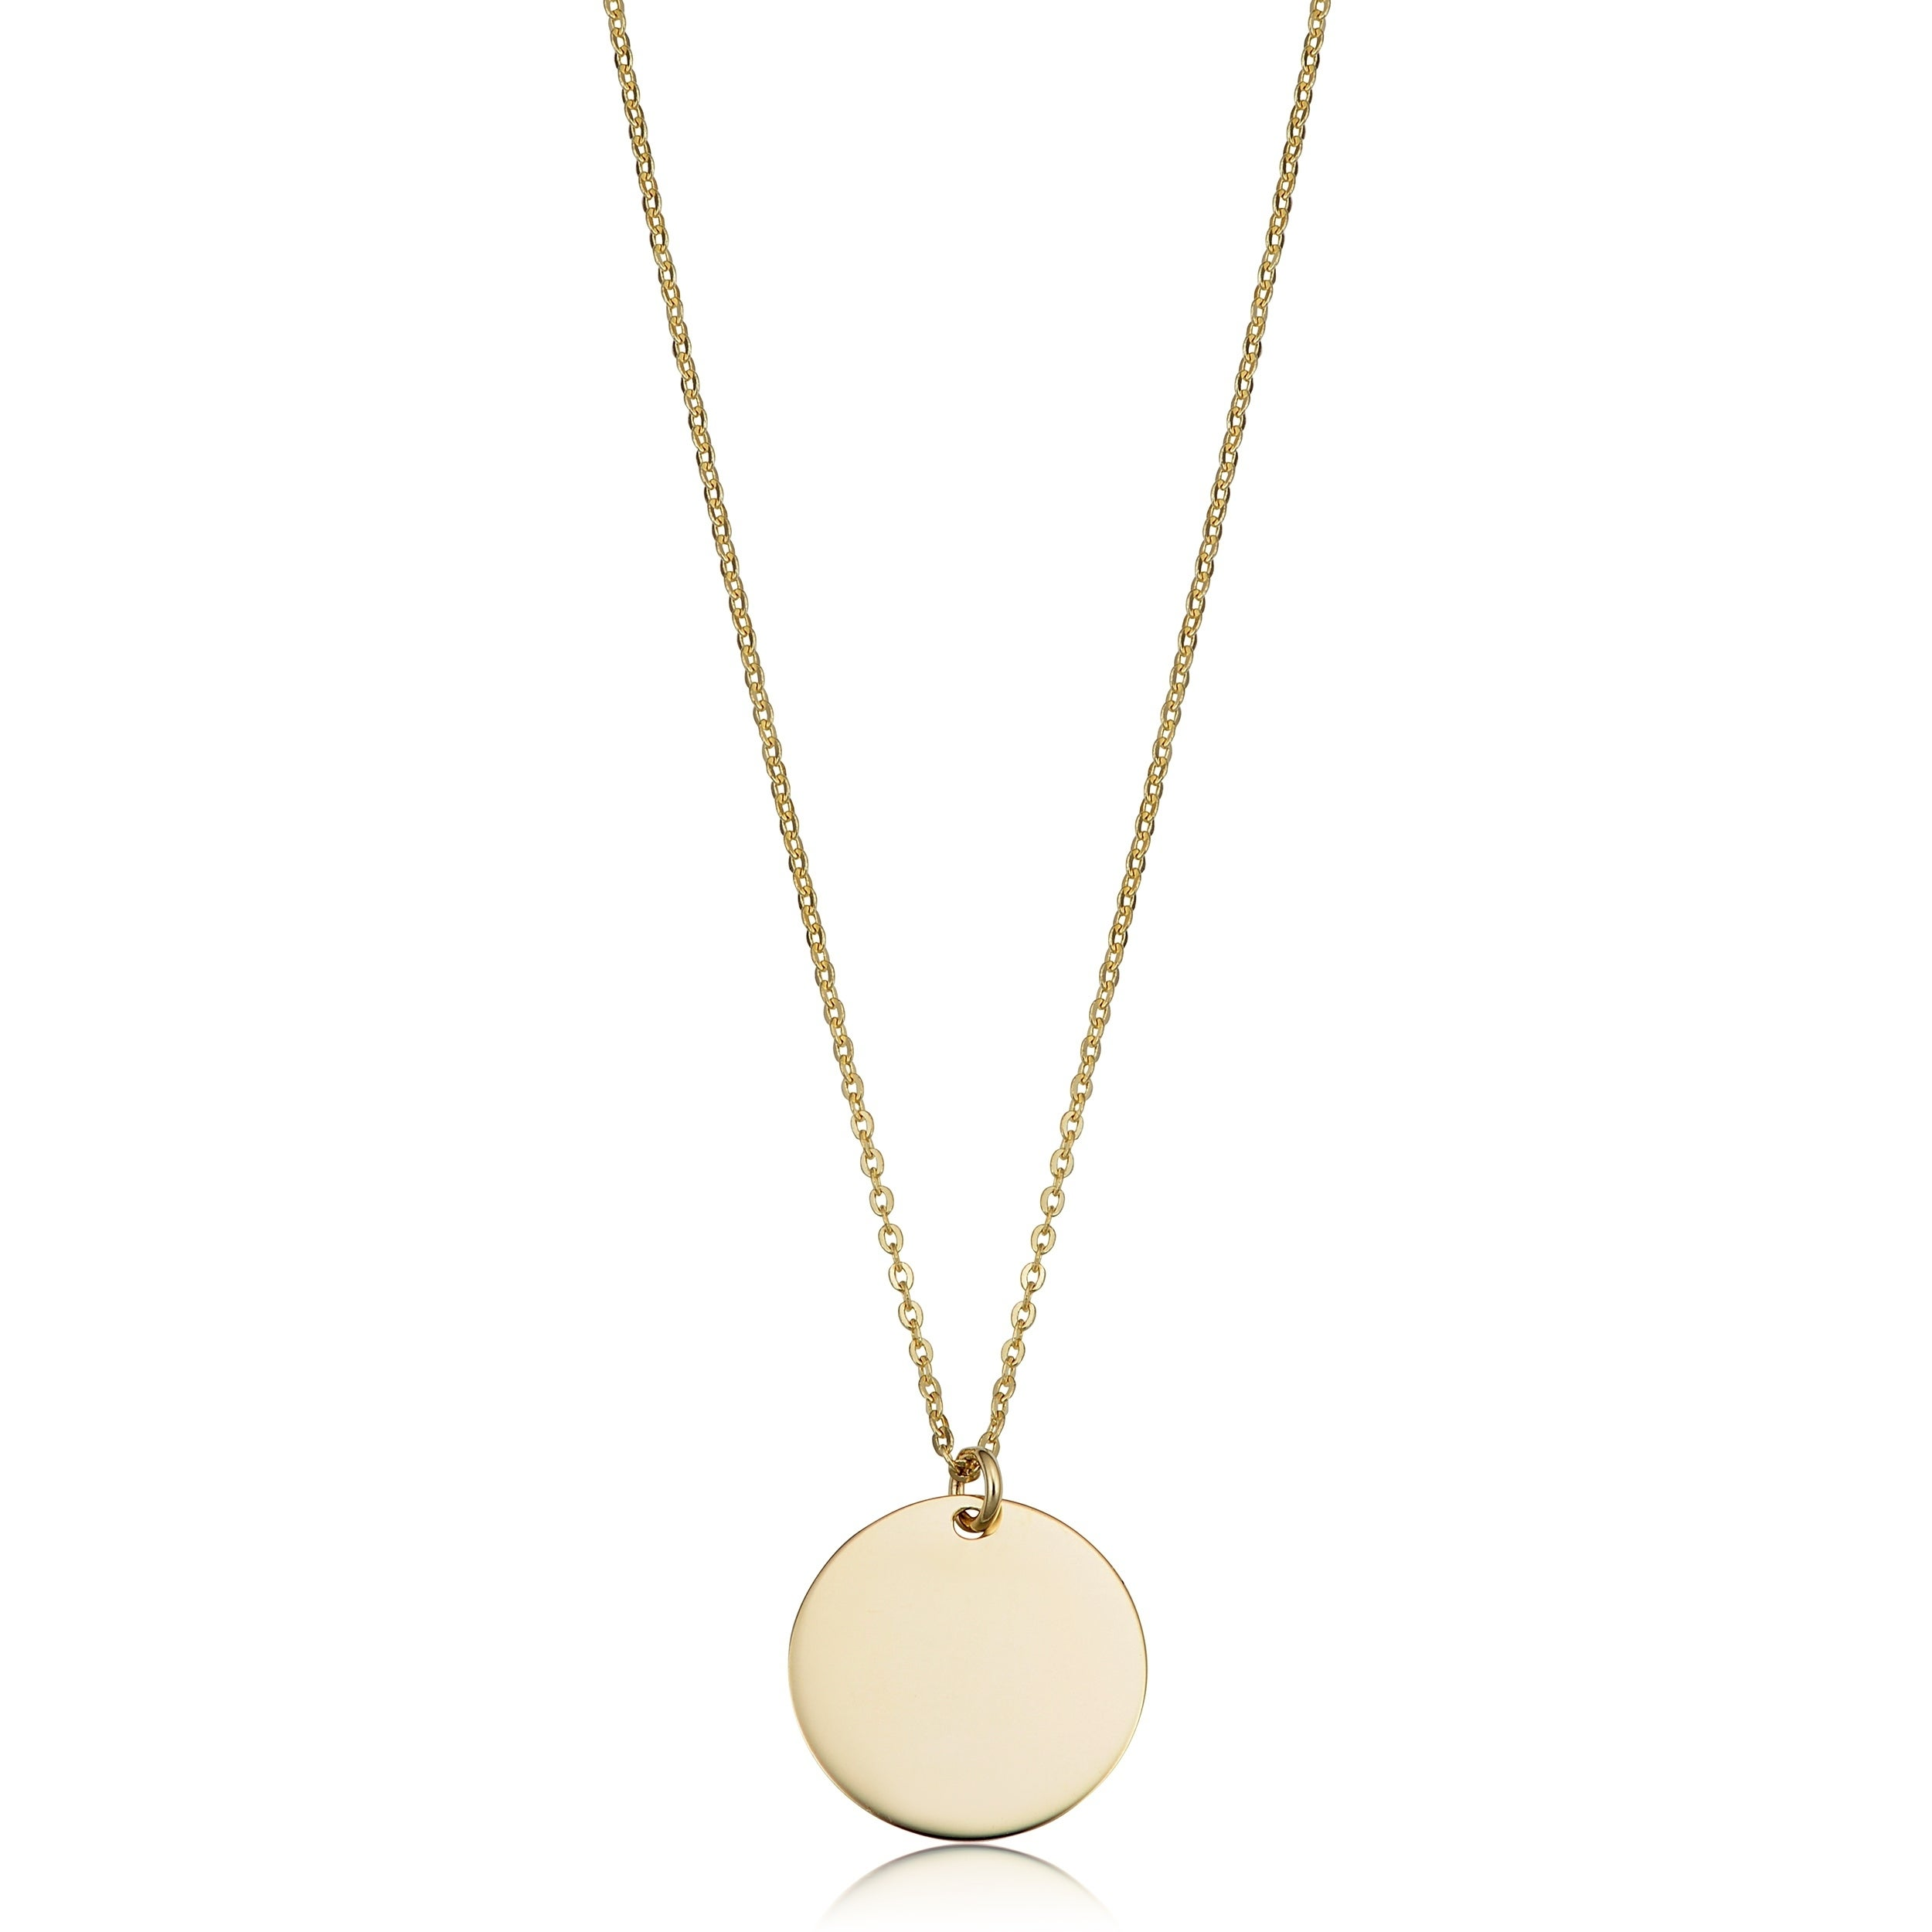 56cbf74241cc9 14k Gold High Polish Round Disc Adjustable Necklace (10 millimeters)